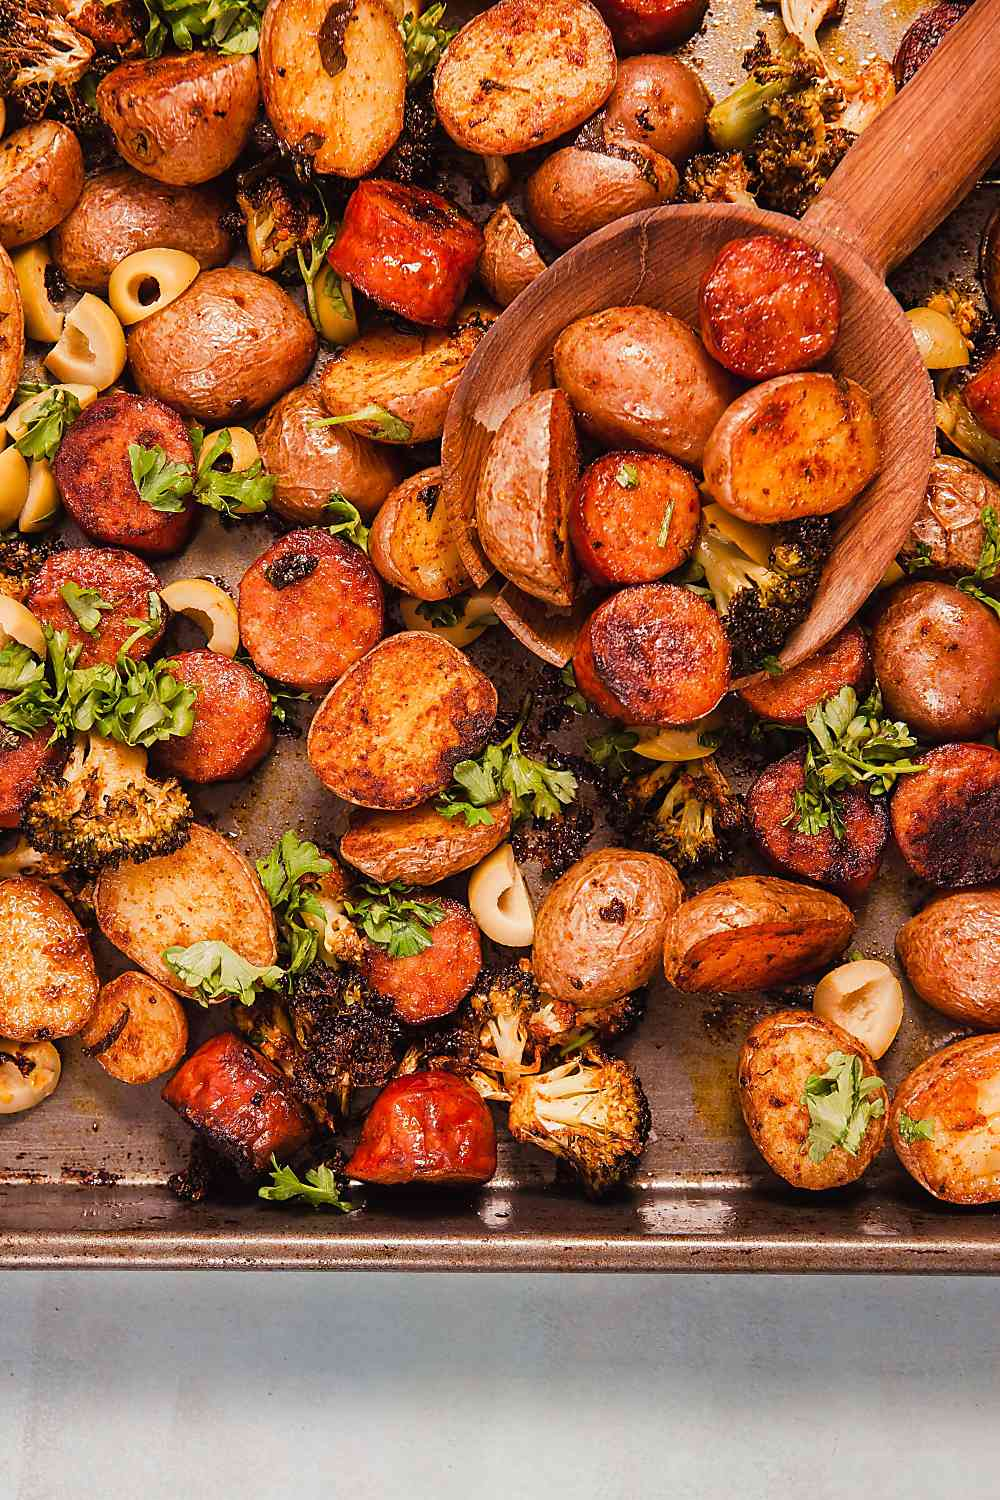 Sheet Pan Spanish Style Potatoes with Chorizo (Whole 30)